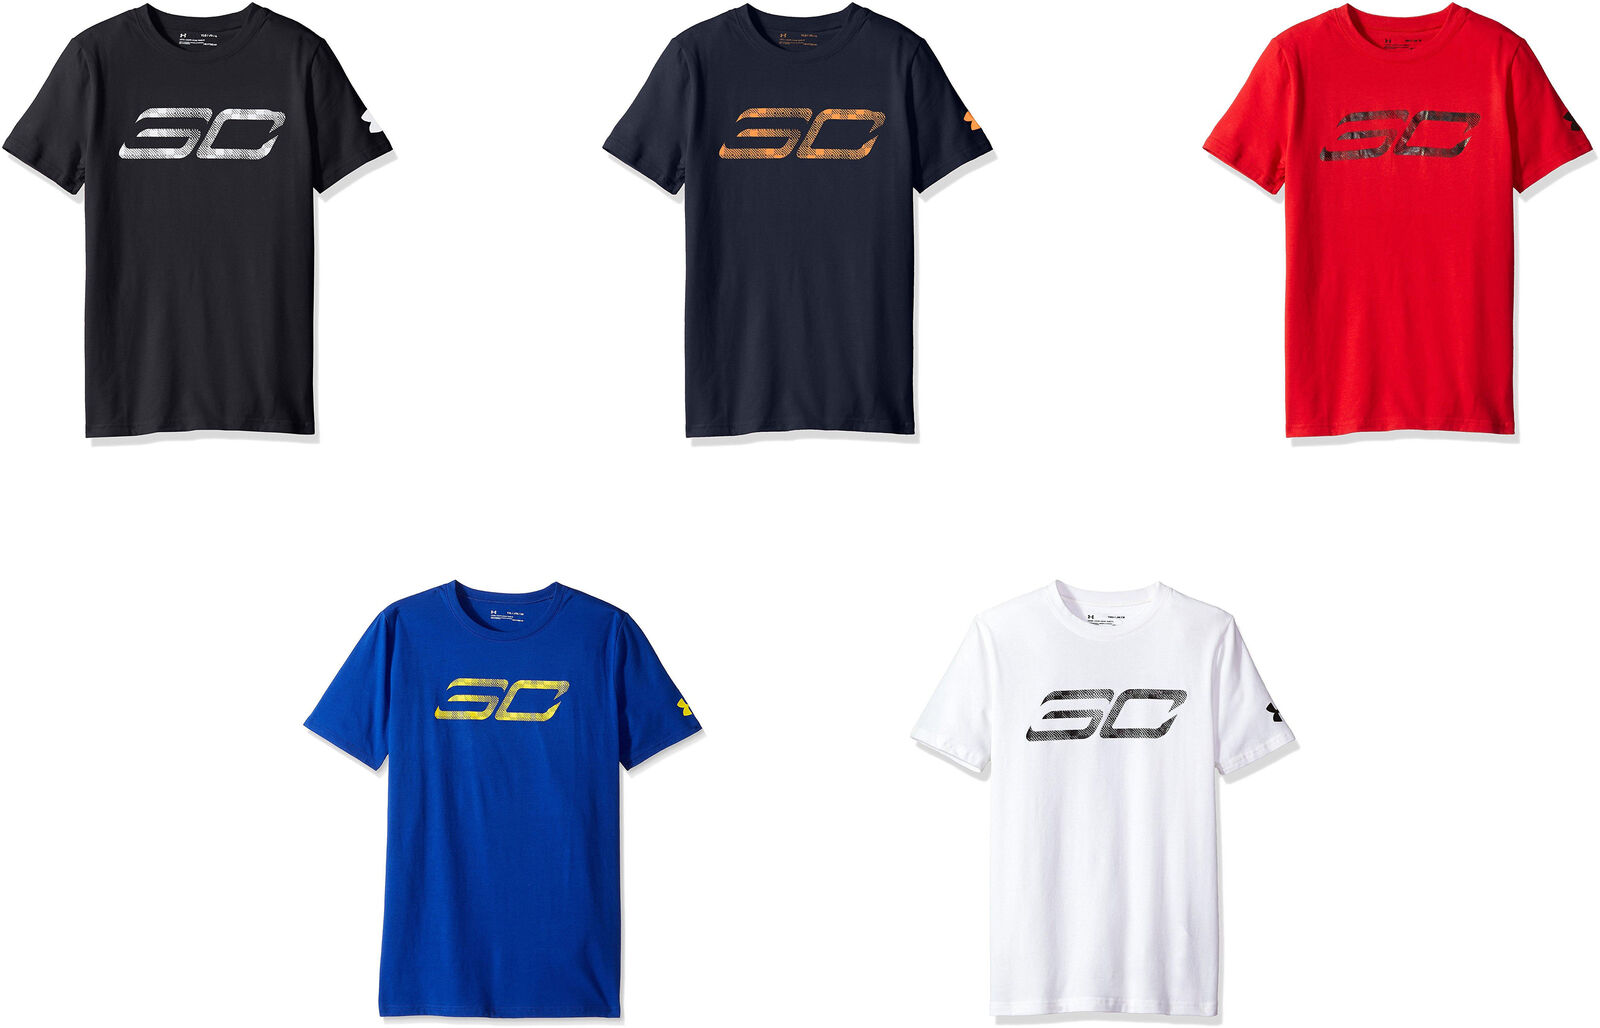 b010117cb5 Details about Under Armour Boys' SC30 Logo Short Sleeve Tee, 5 Colors